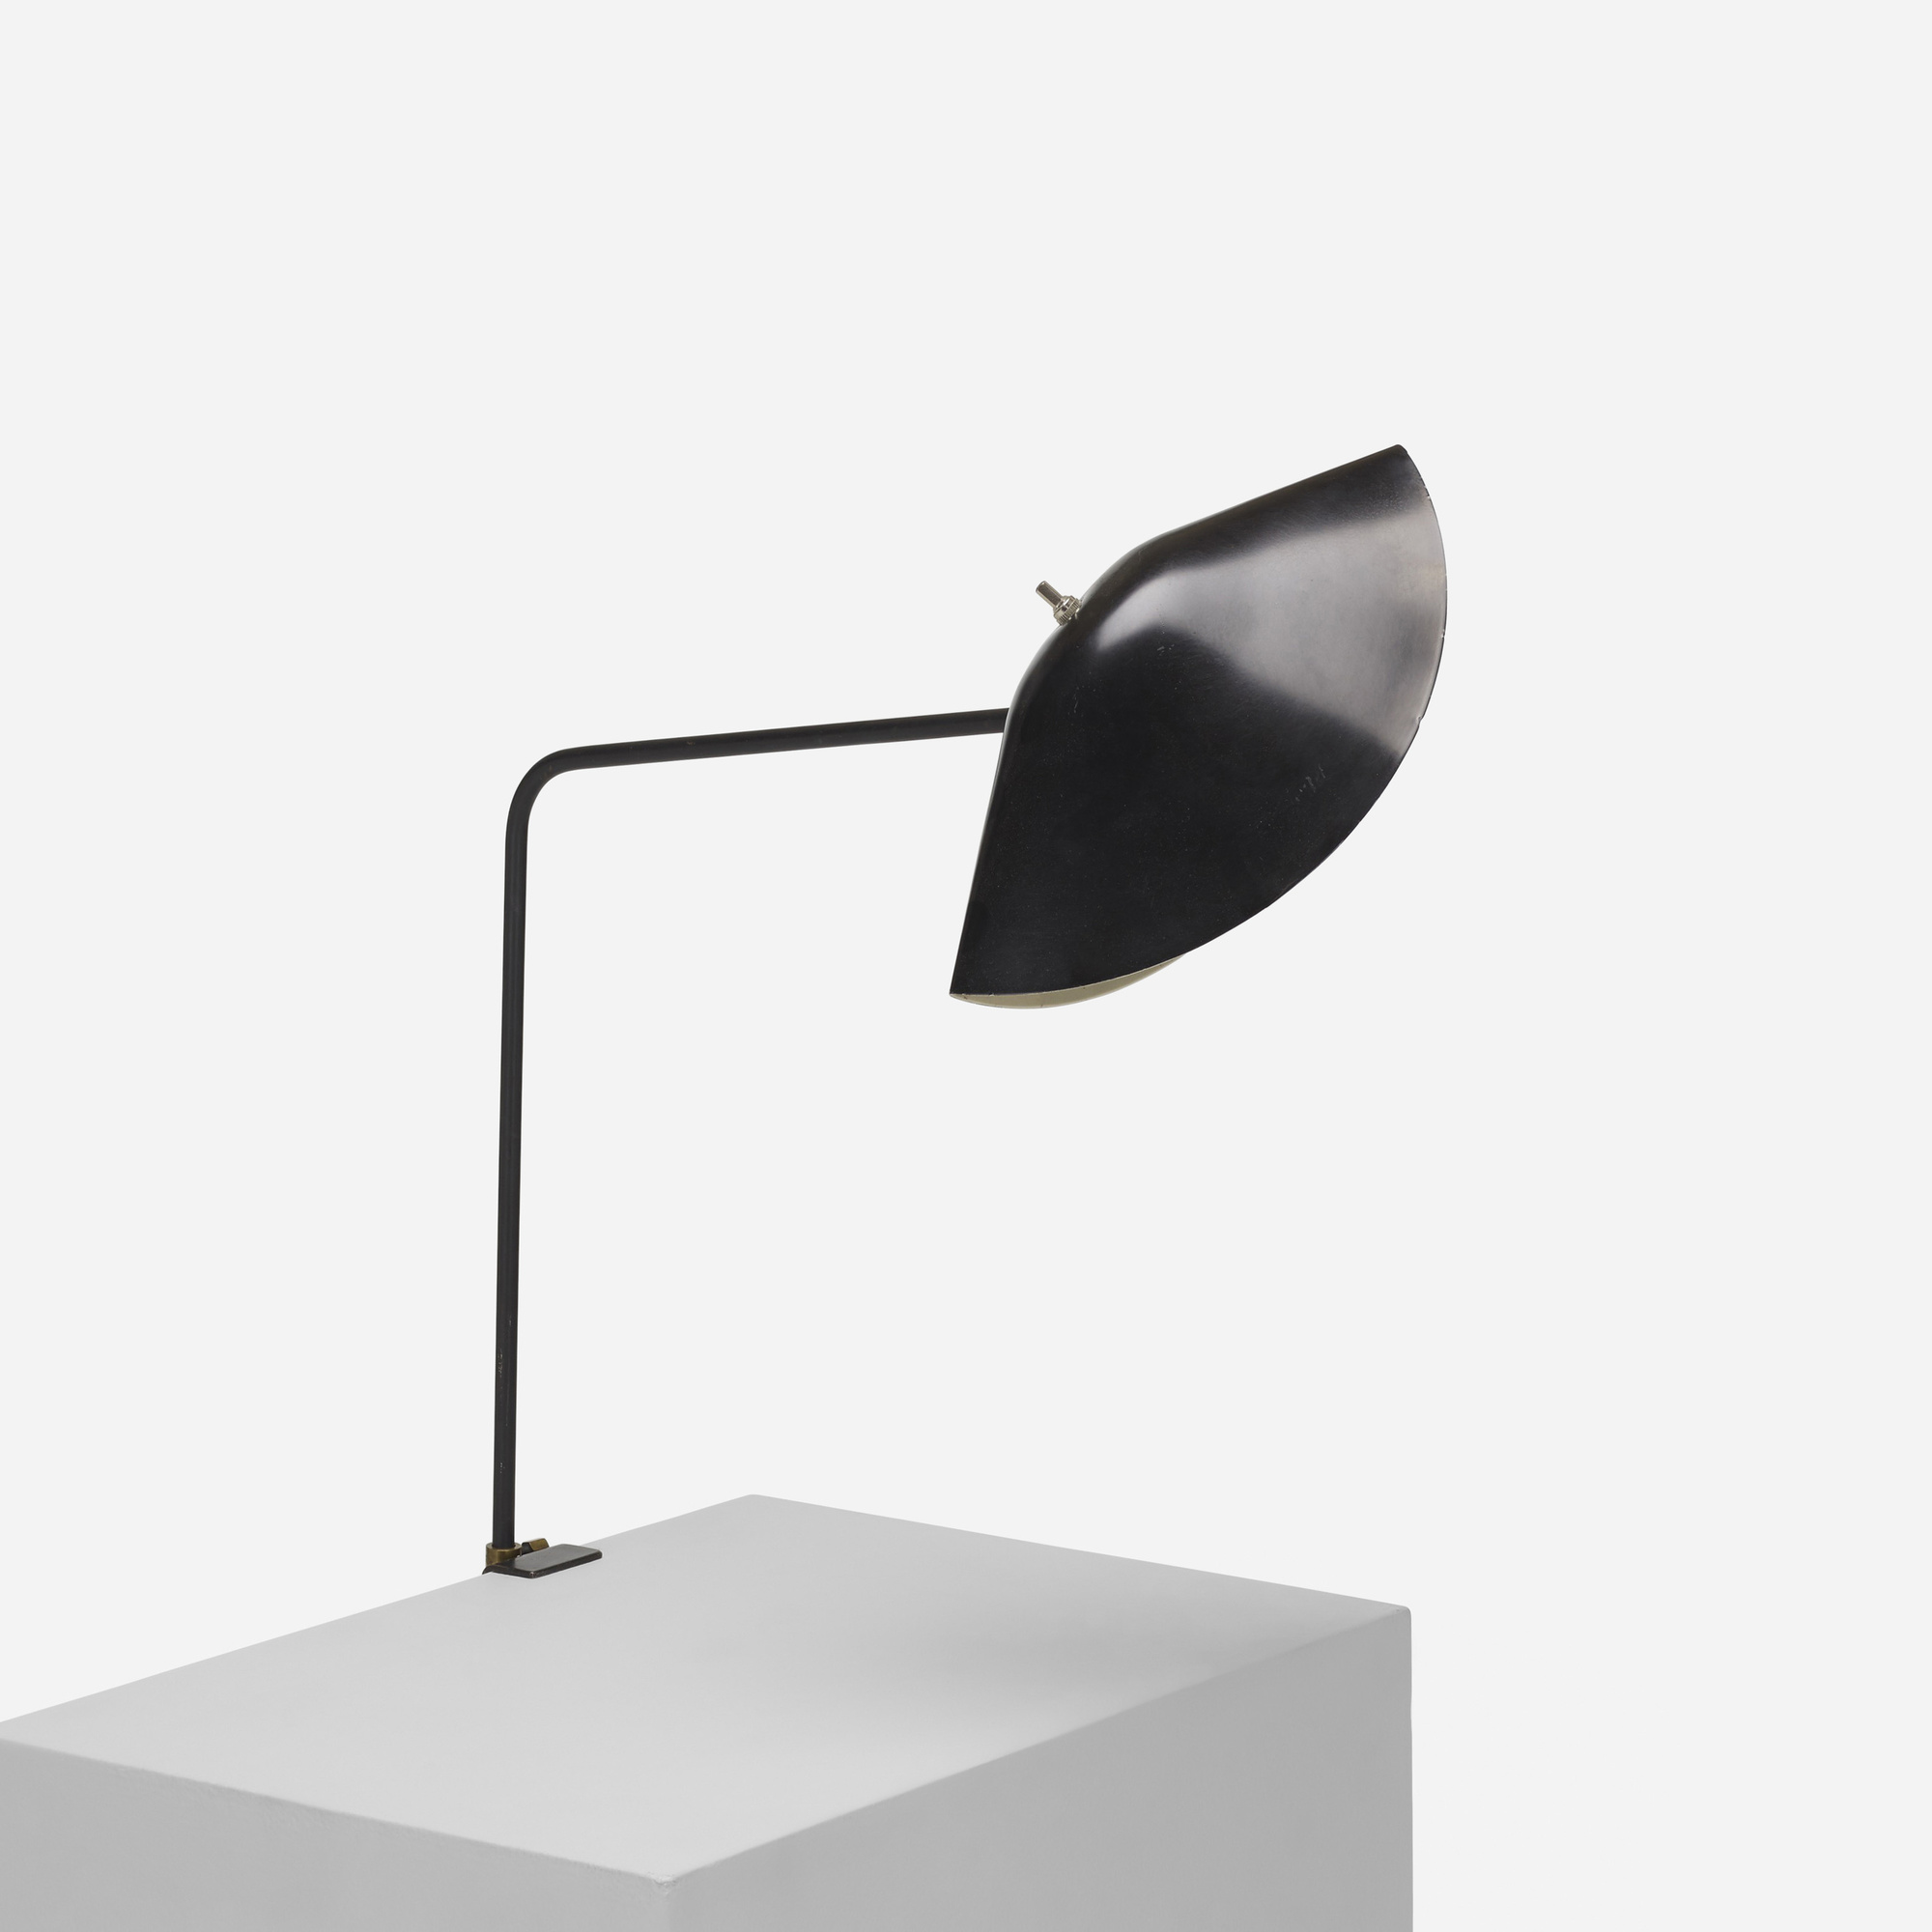 620: After Serge Mouille / table lamp (1 of 1)